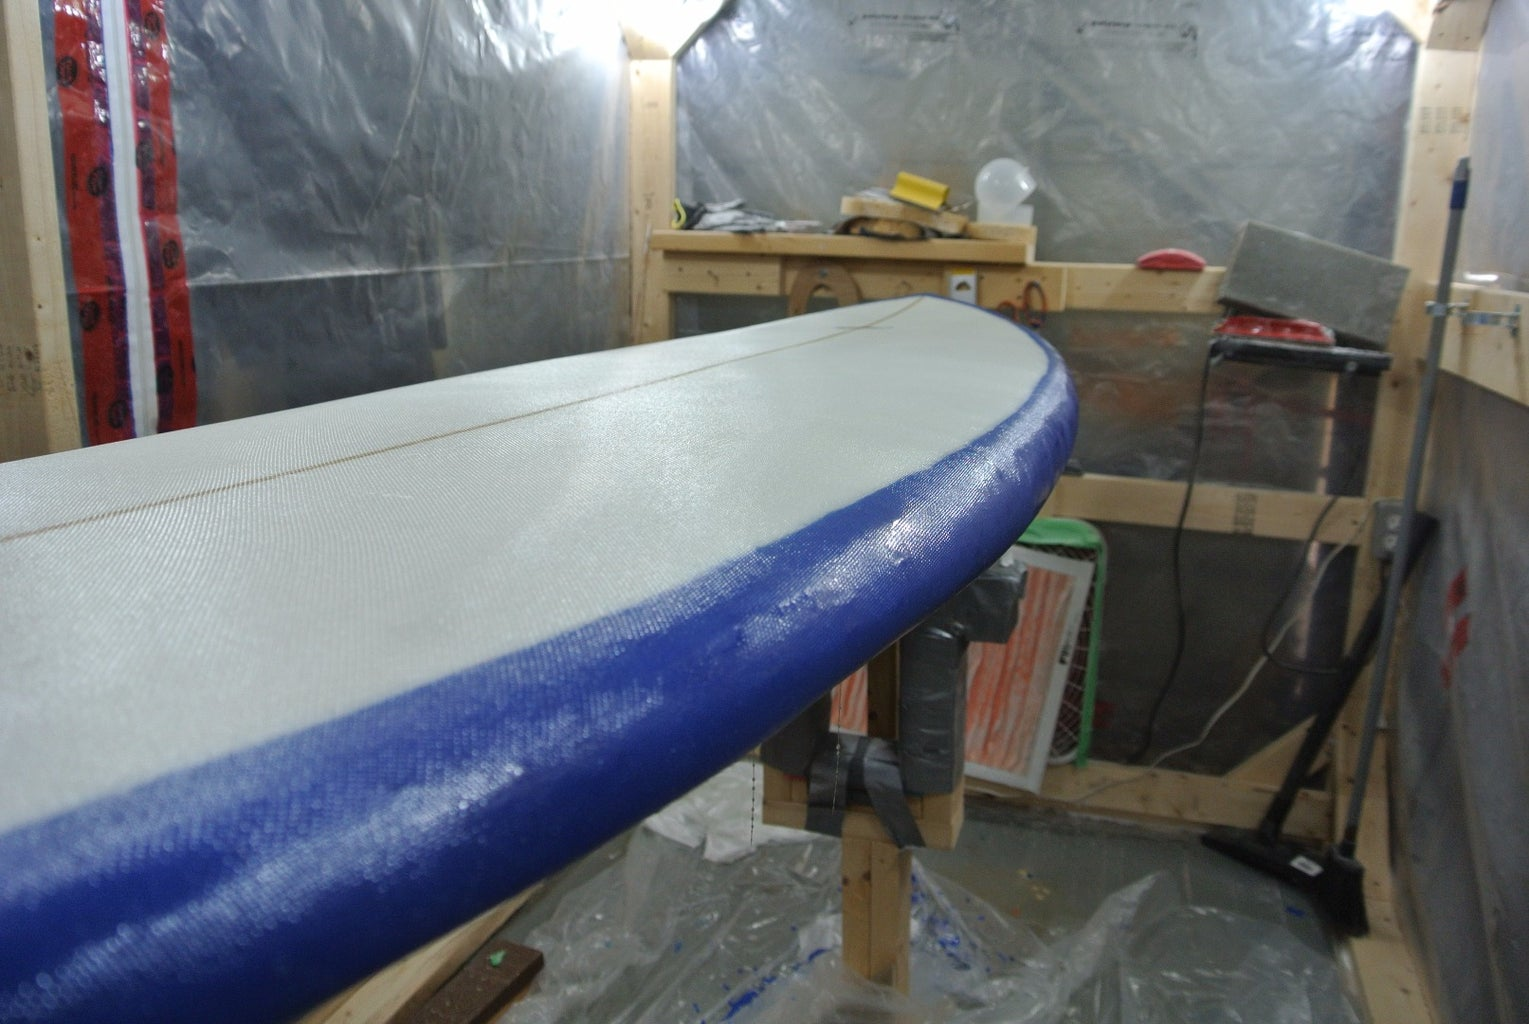 Laminating/Glassing the Deck